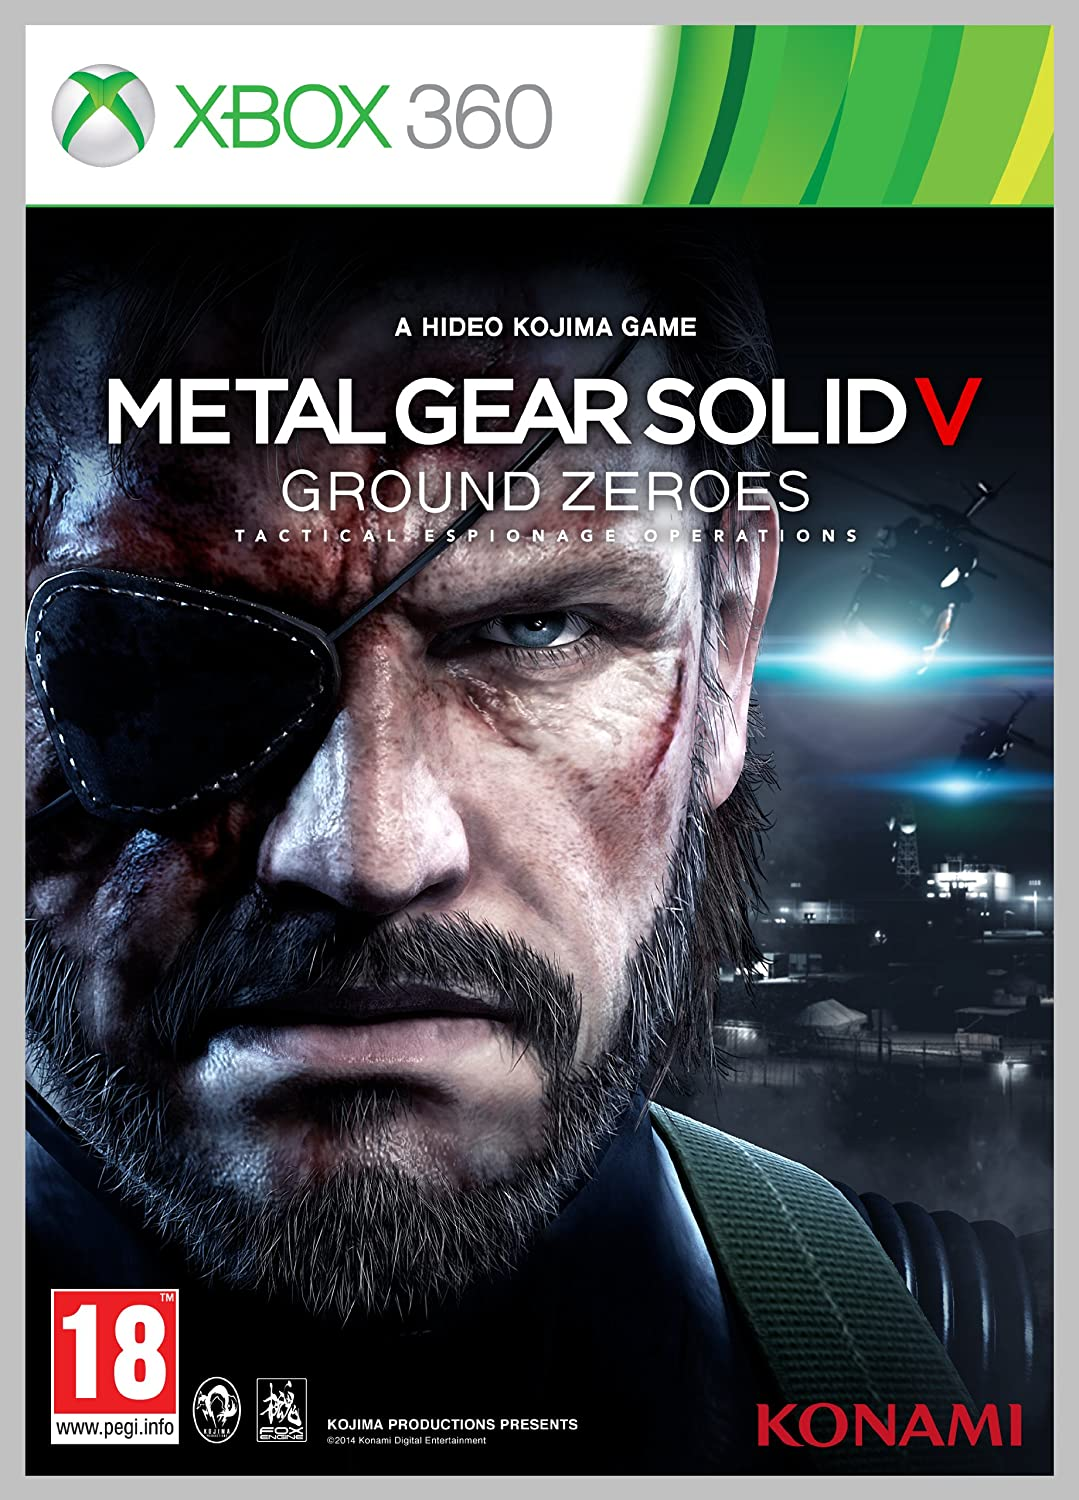 Metal Gear Solid V Ground Zeroes Xbox 360 Amazoncouk PC Video Games